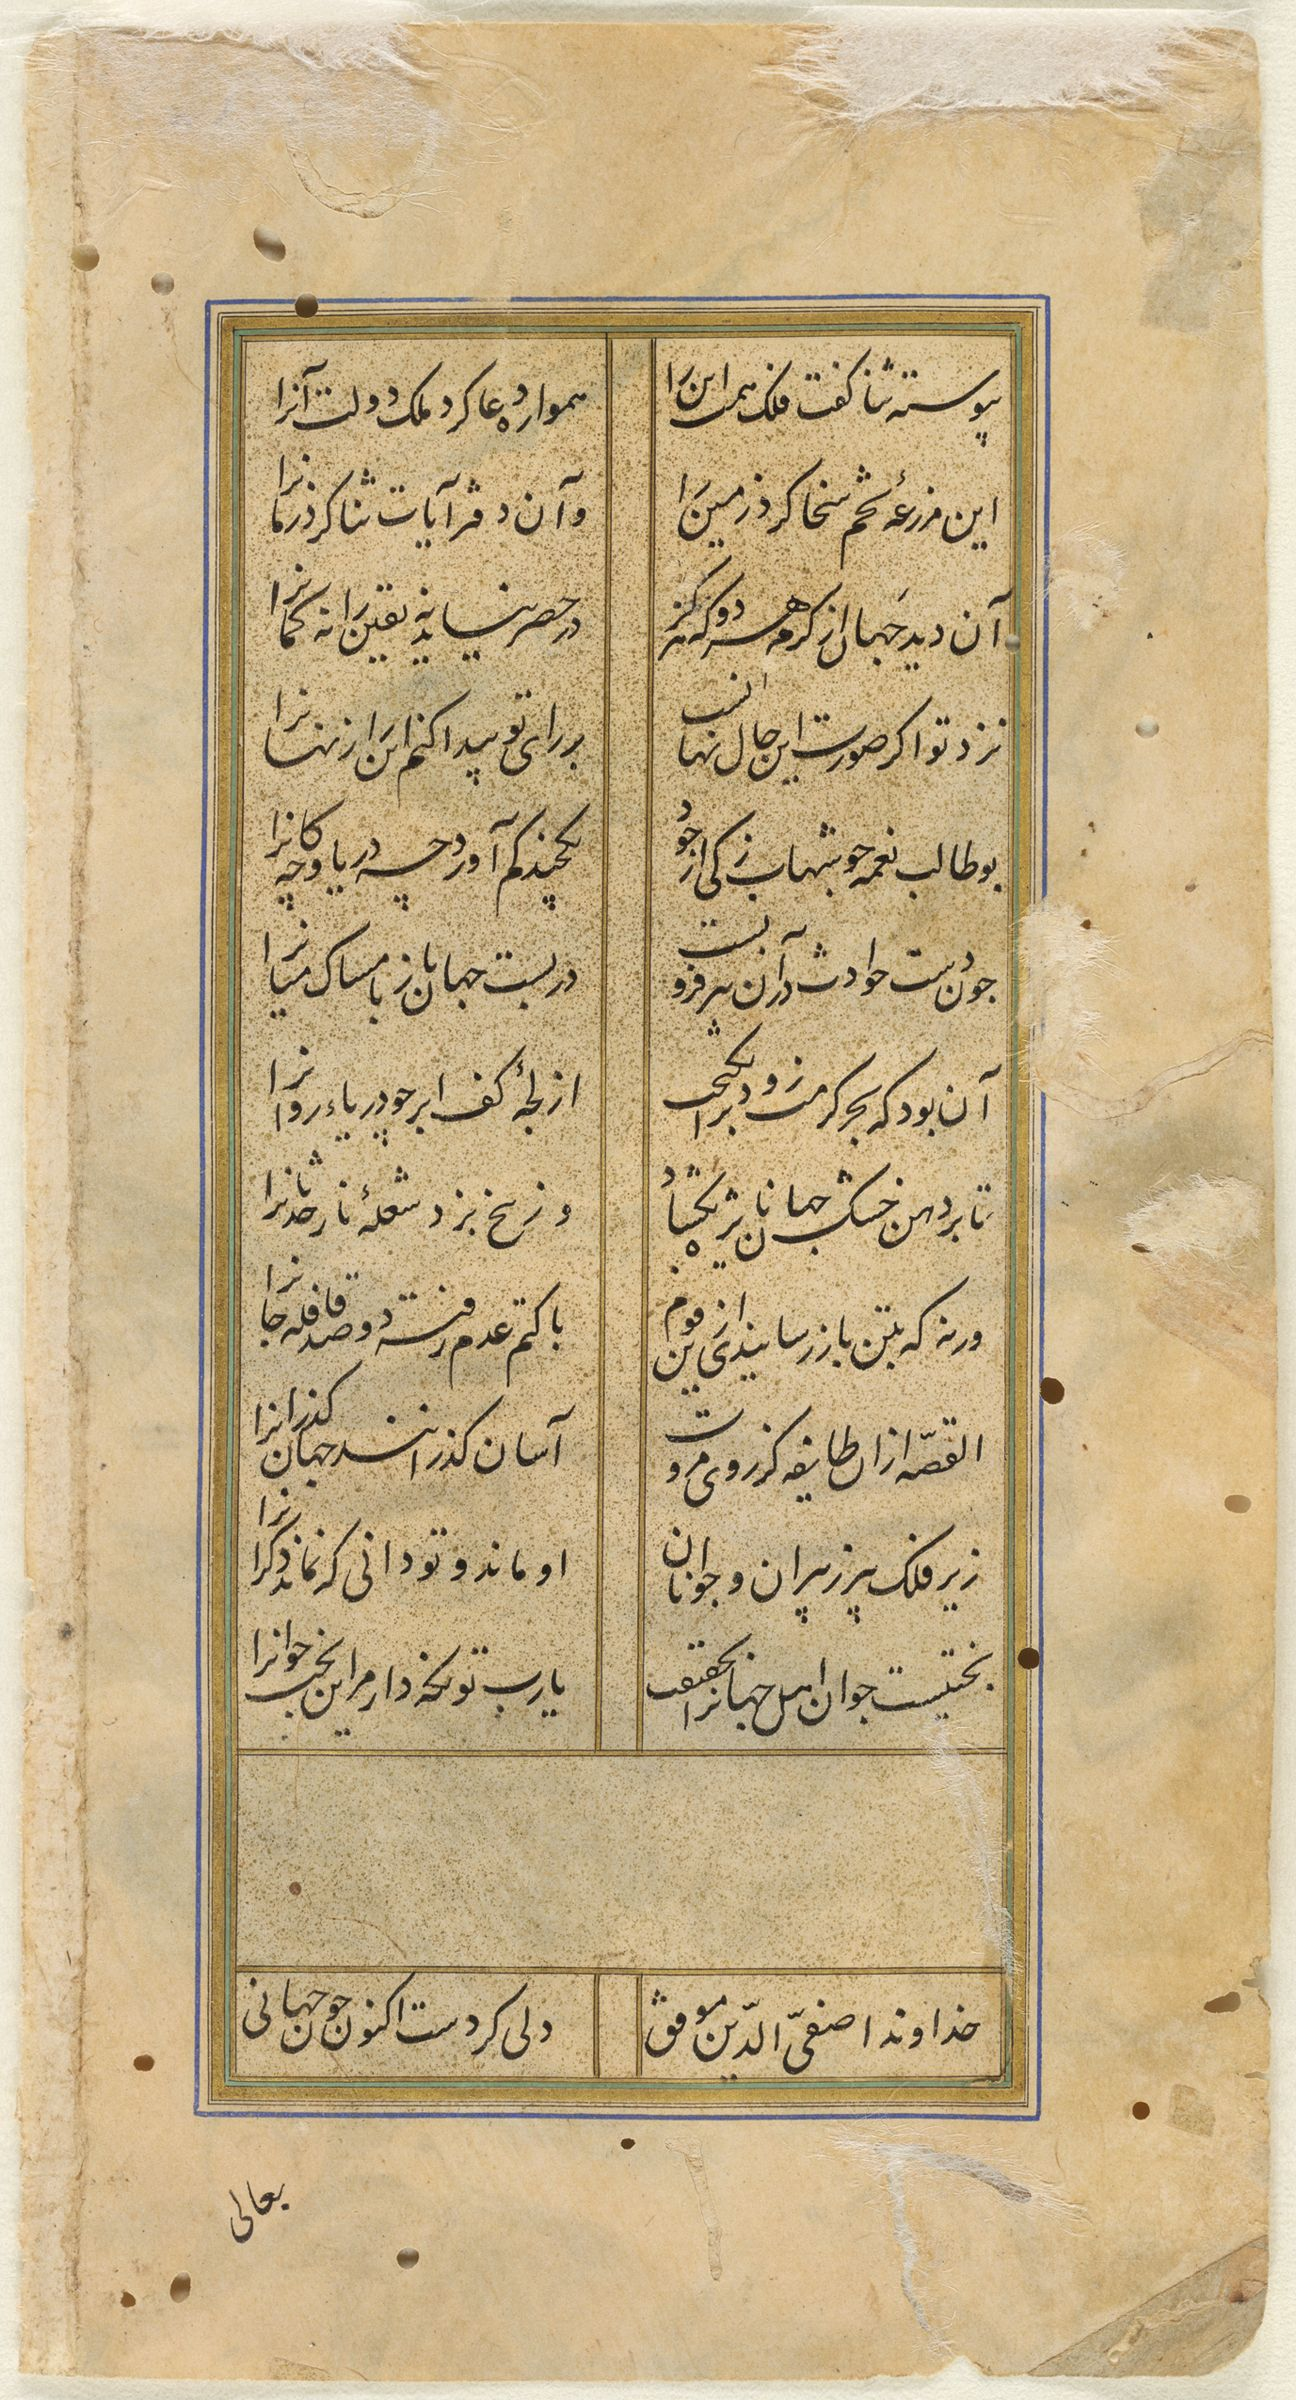 Folio 308 (Text, Recto And Verso), From A Manuscript Of The Divan Of Anvari